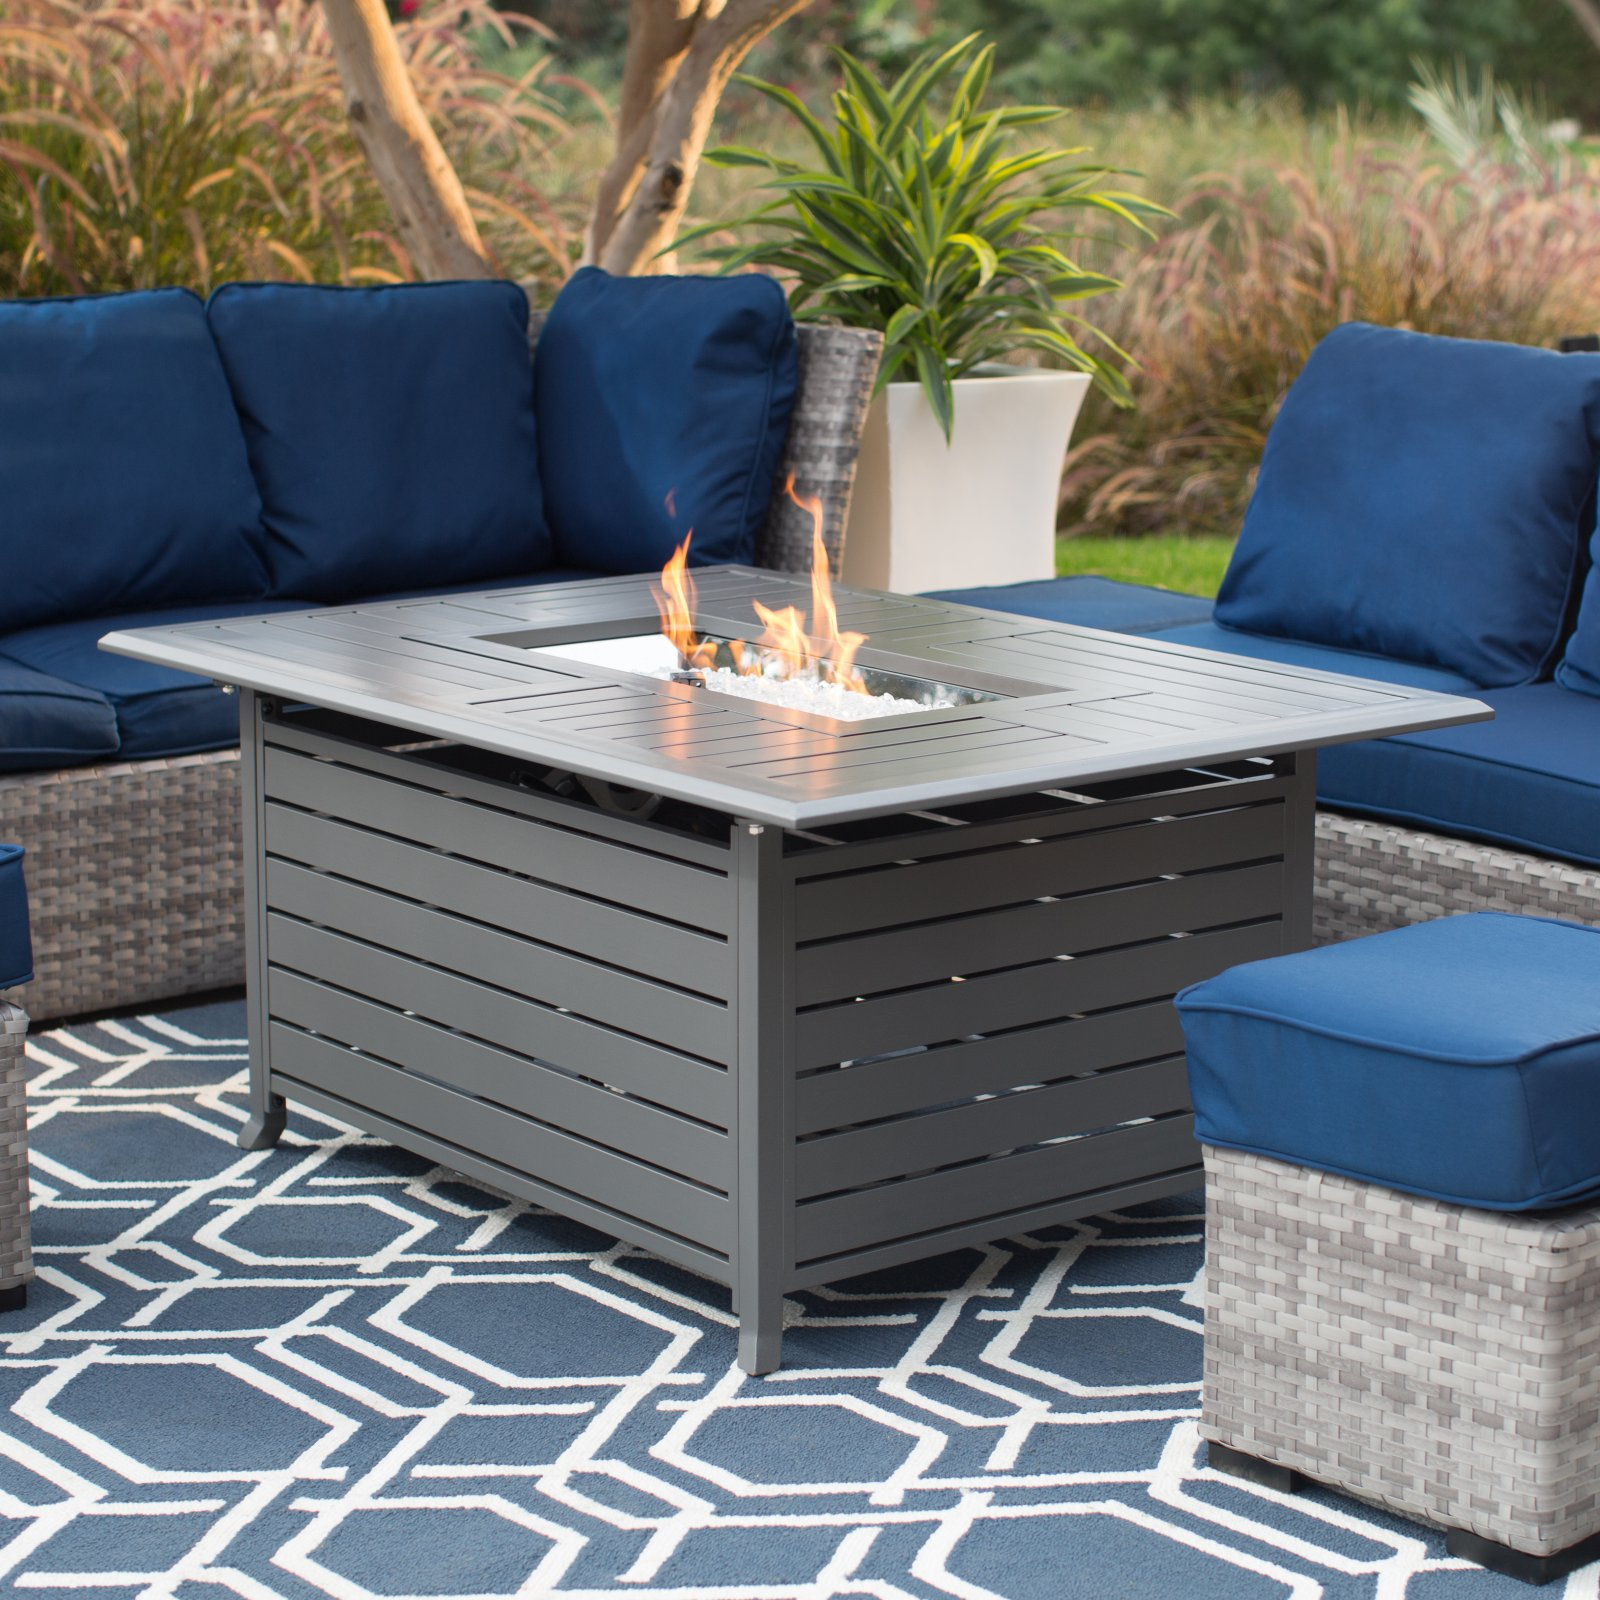 Red Ember Longmont 50 in. Fire Table - Charcoal